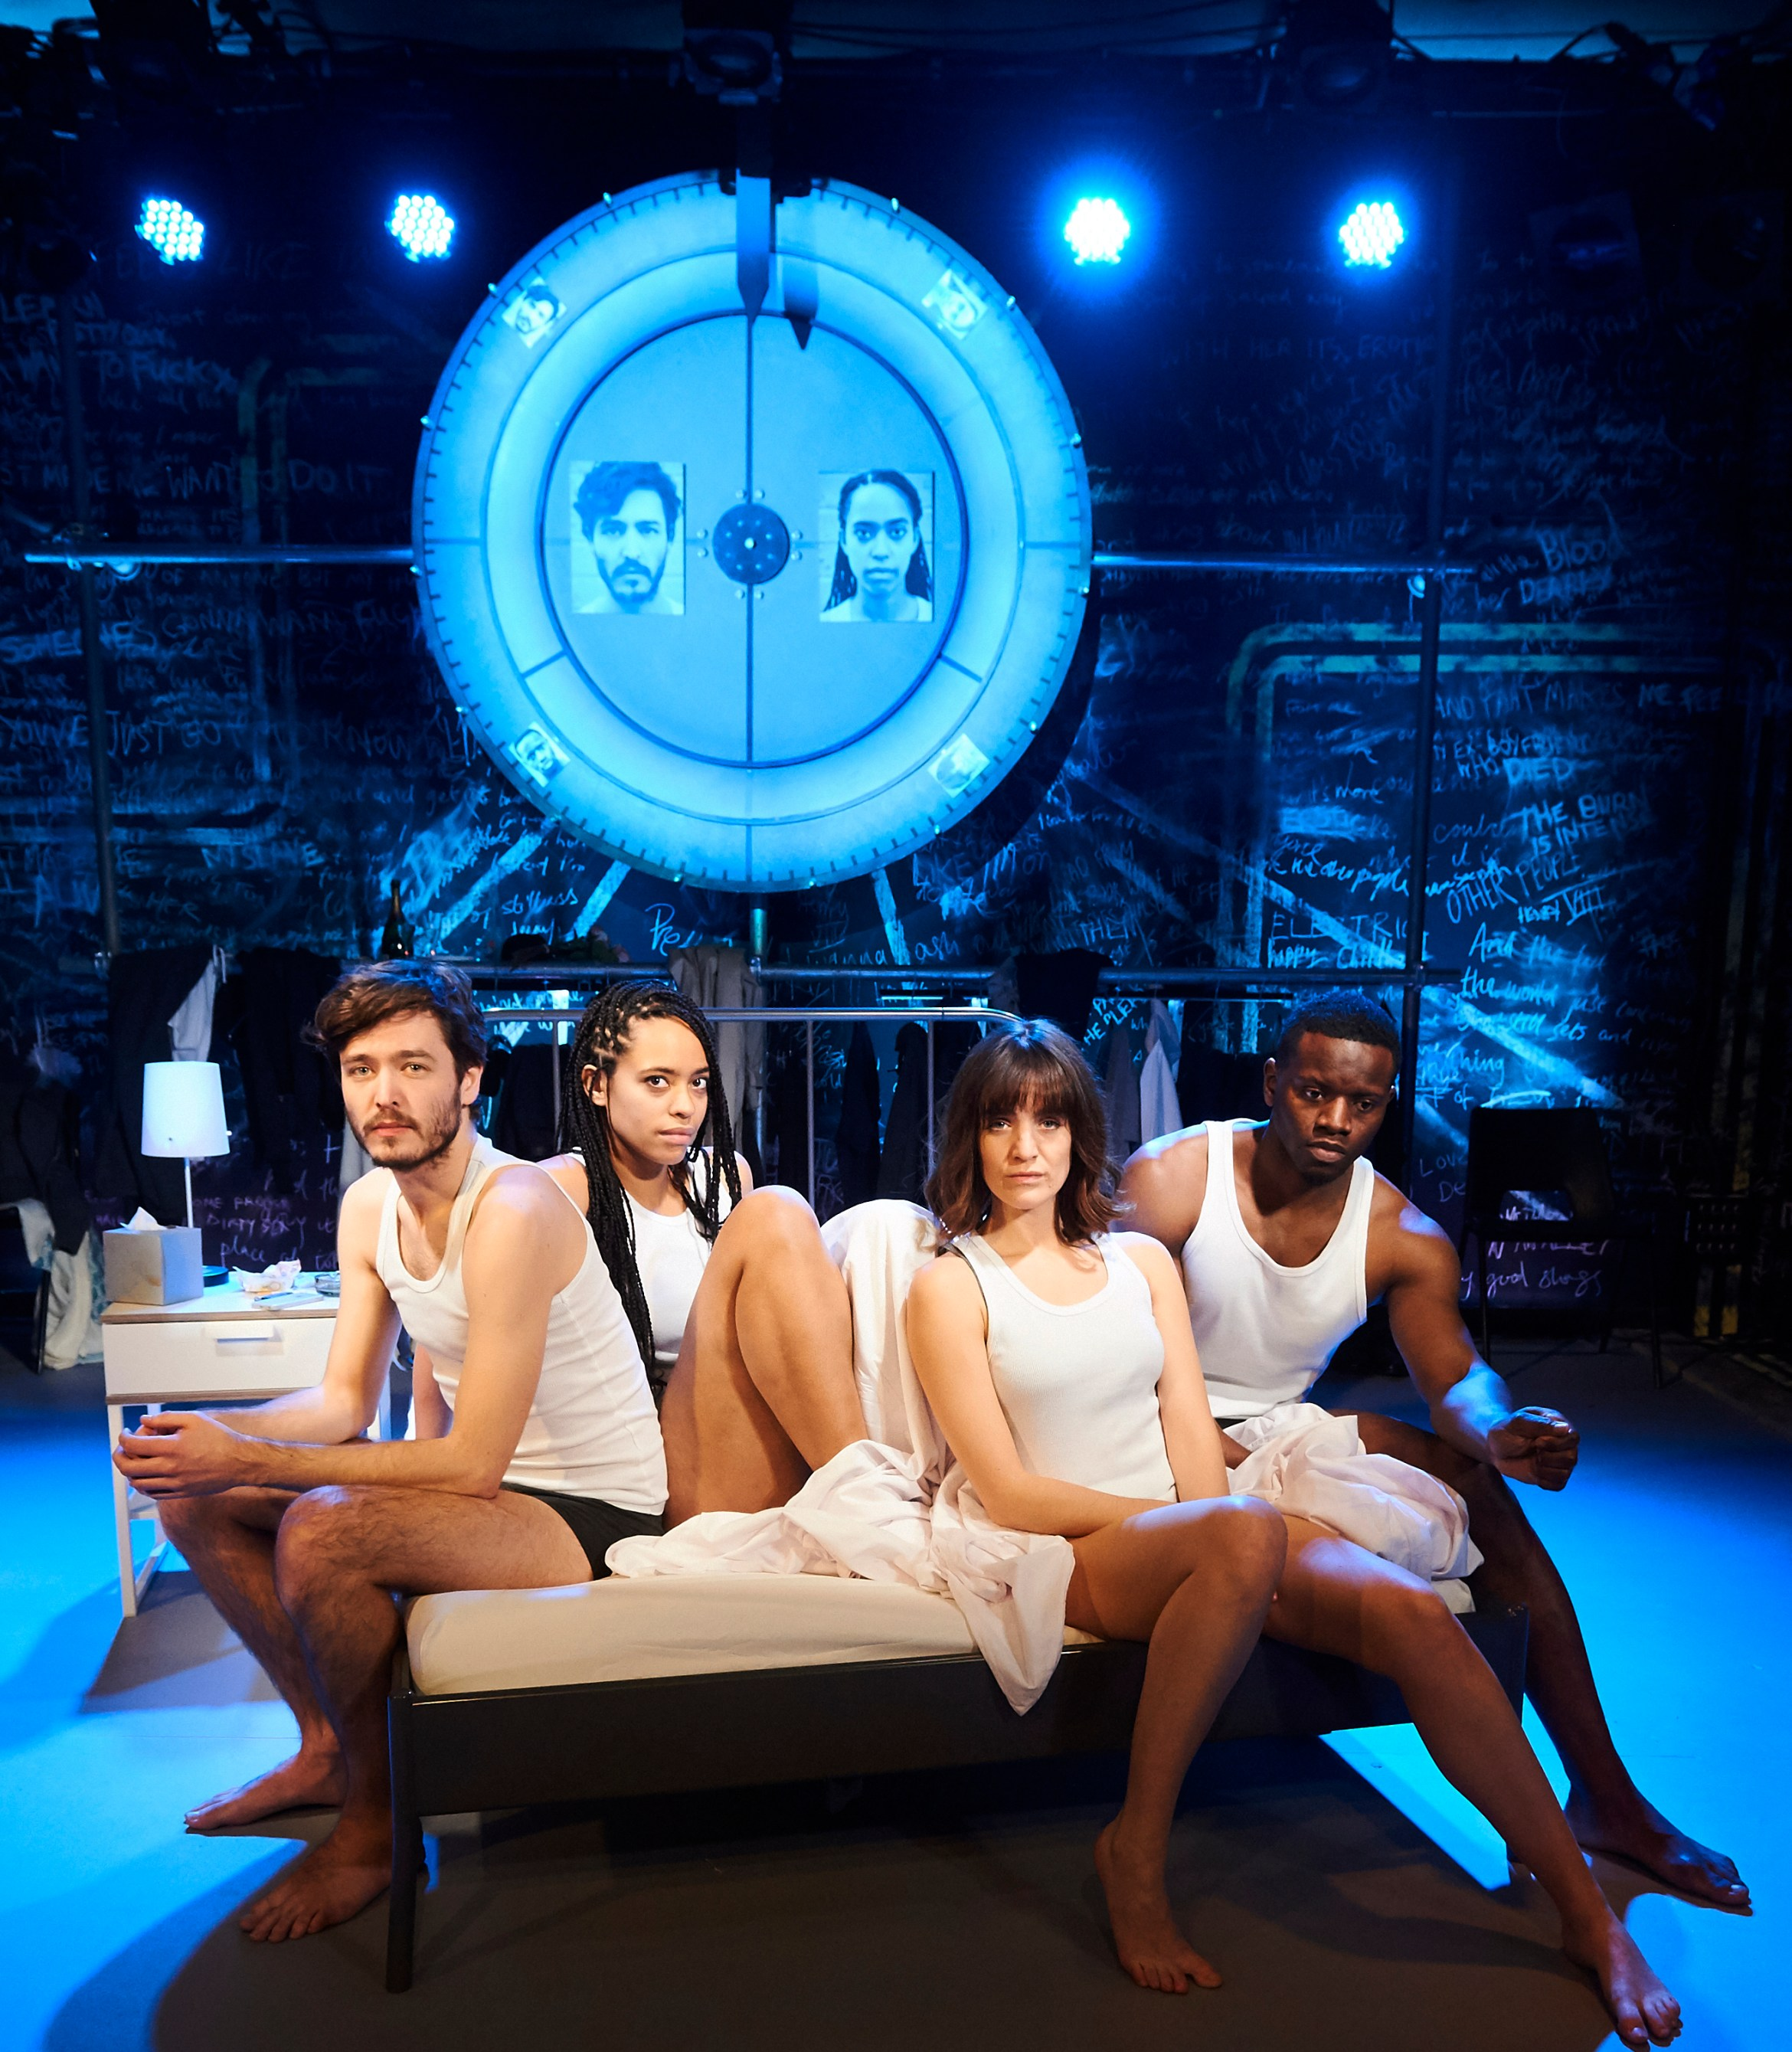 La Ronde, Alex Vlahos, Amanda Wilkin, Lauren Samuels and Leemore Marrett Jr (courtesy Ray Burmiston) 11.jpg